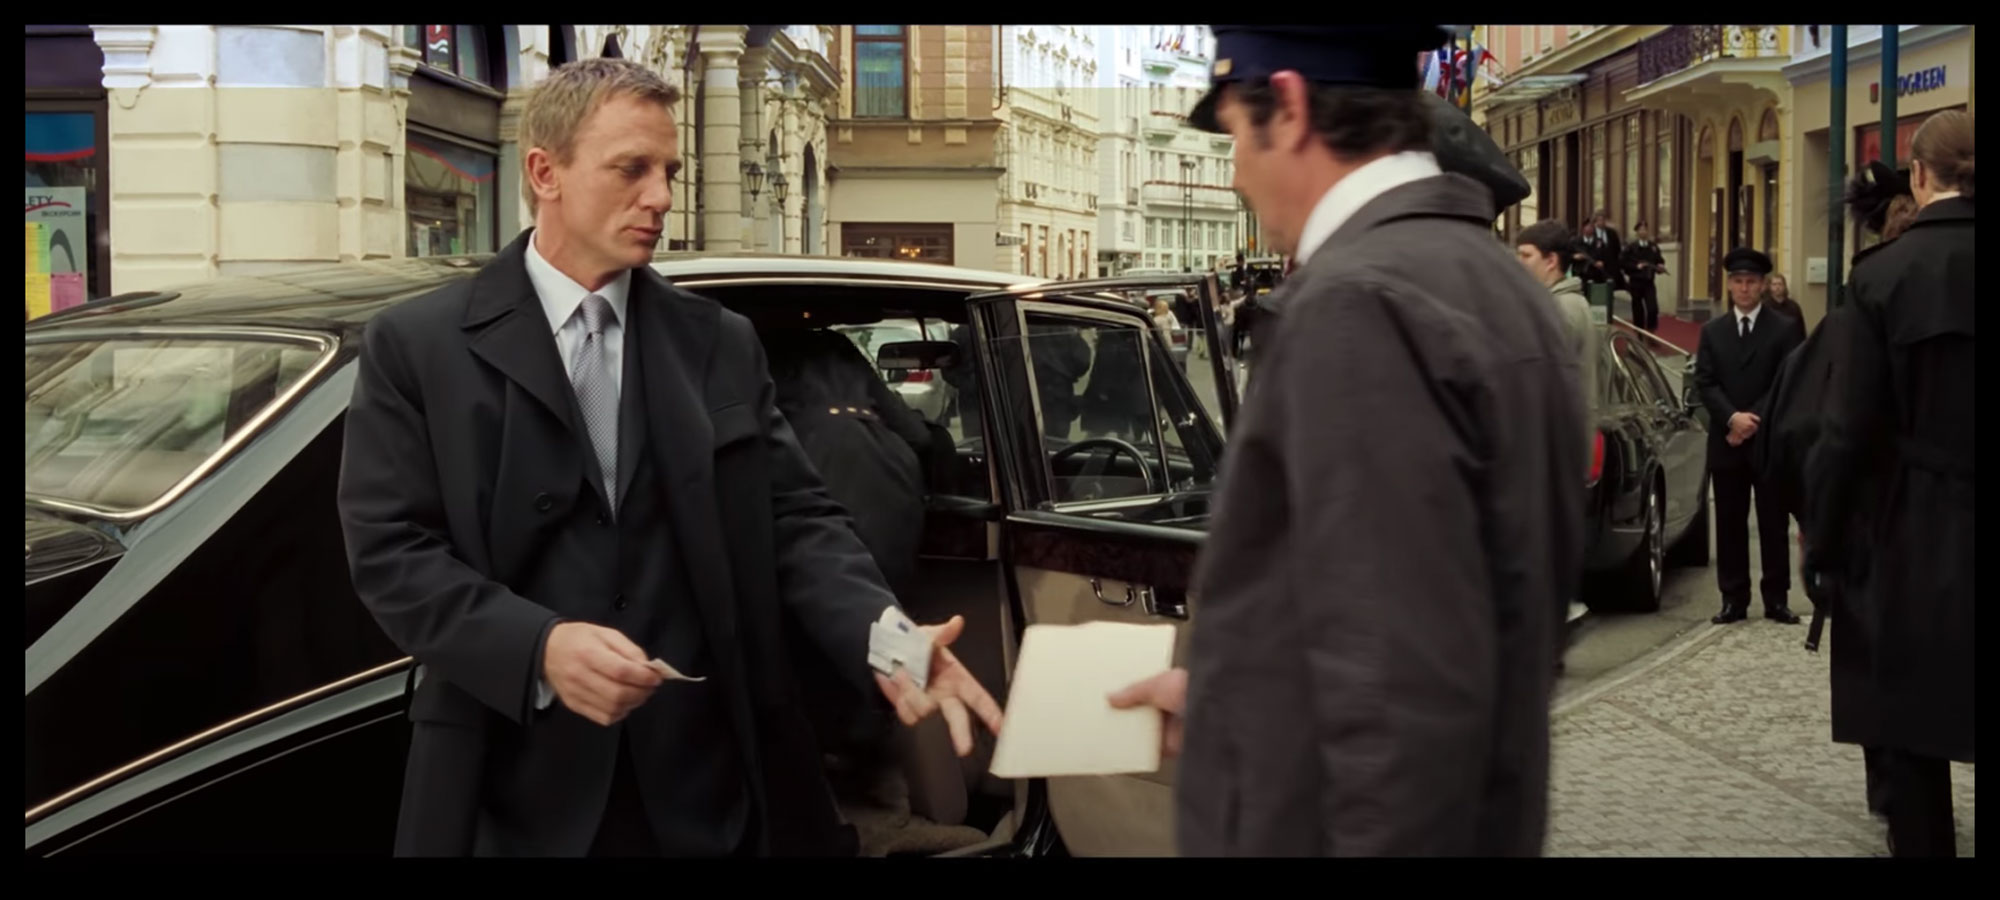 Douglas Pell Money Clip seen in casino royale Daniel craig makes a document switch with a porter